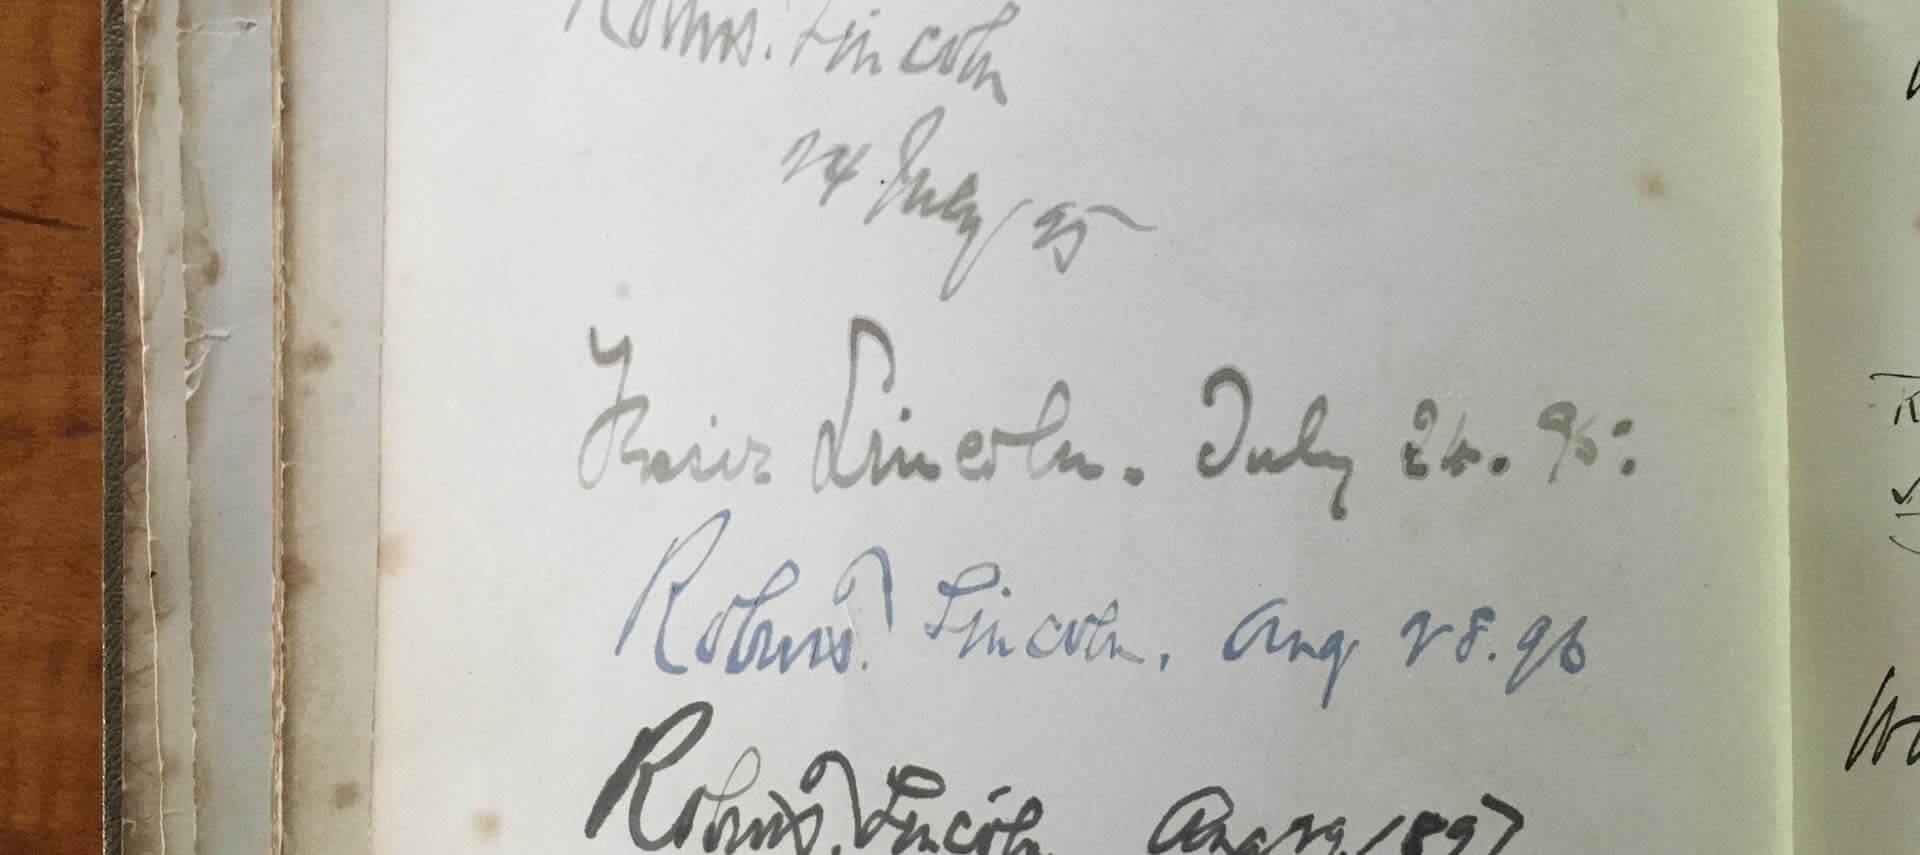 A list of signatures and dates on a very old historic book page.